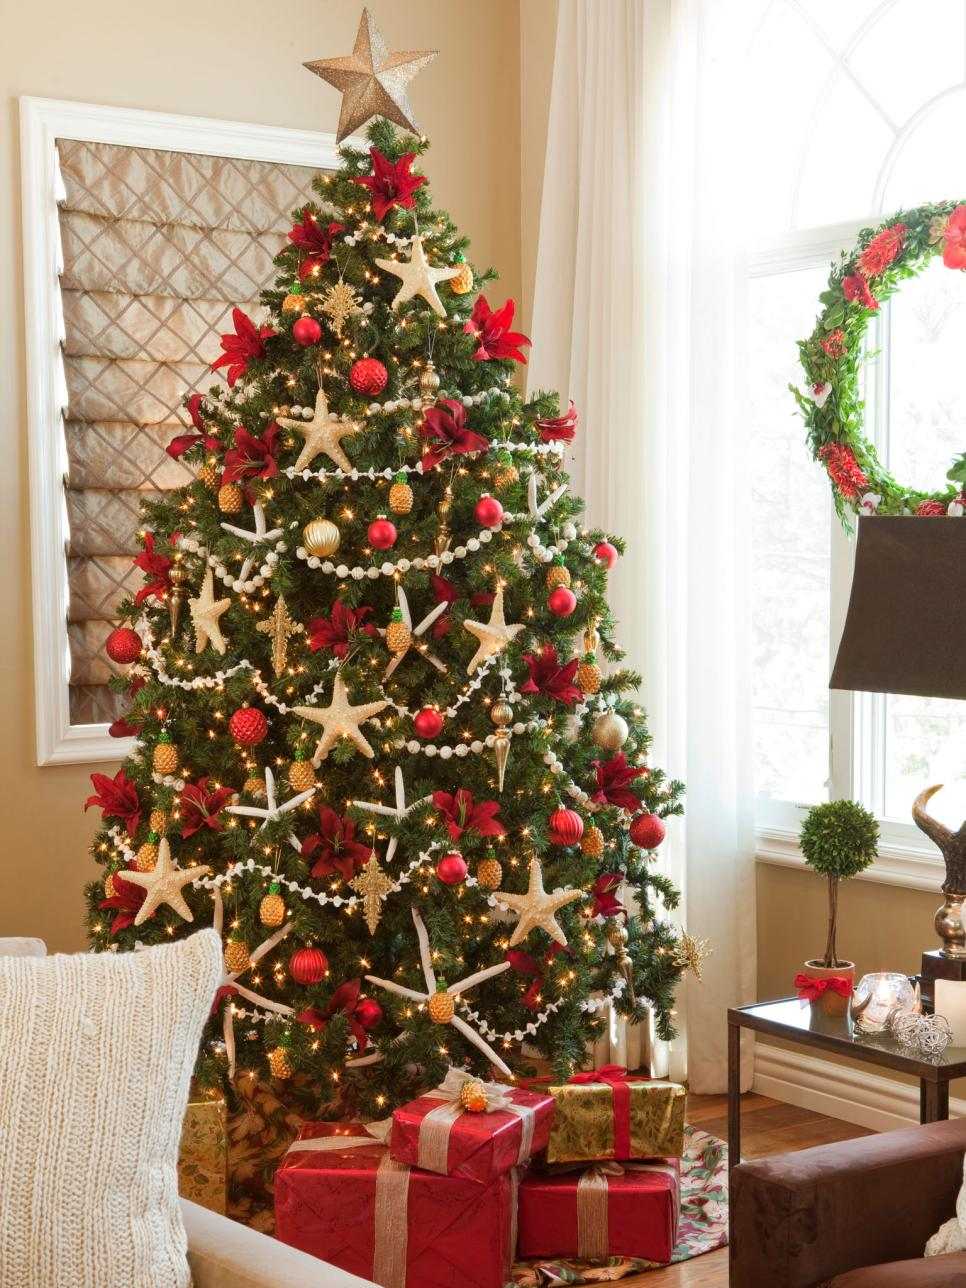 Colorful Christmas Tree Decorations.30 Country Christmas Tree Decorating Ideas Gac